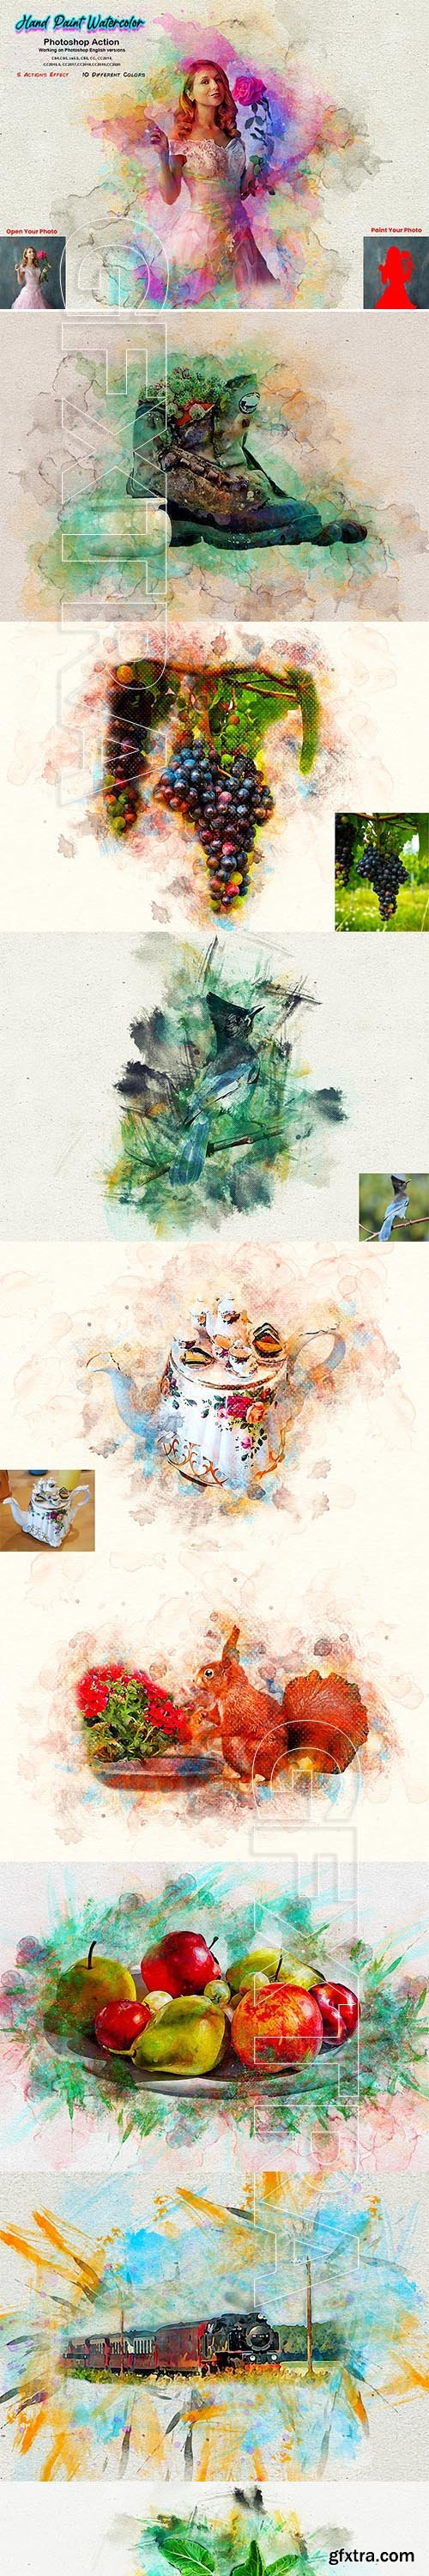 CreativeMarket - Hand Paint Watercolor Photoshop Action 5628157